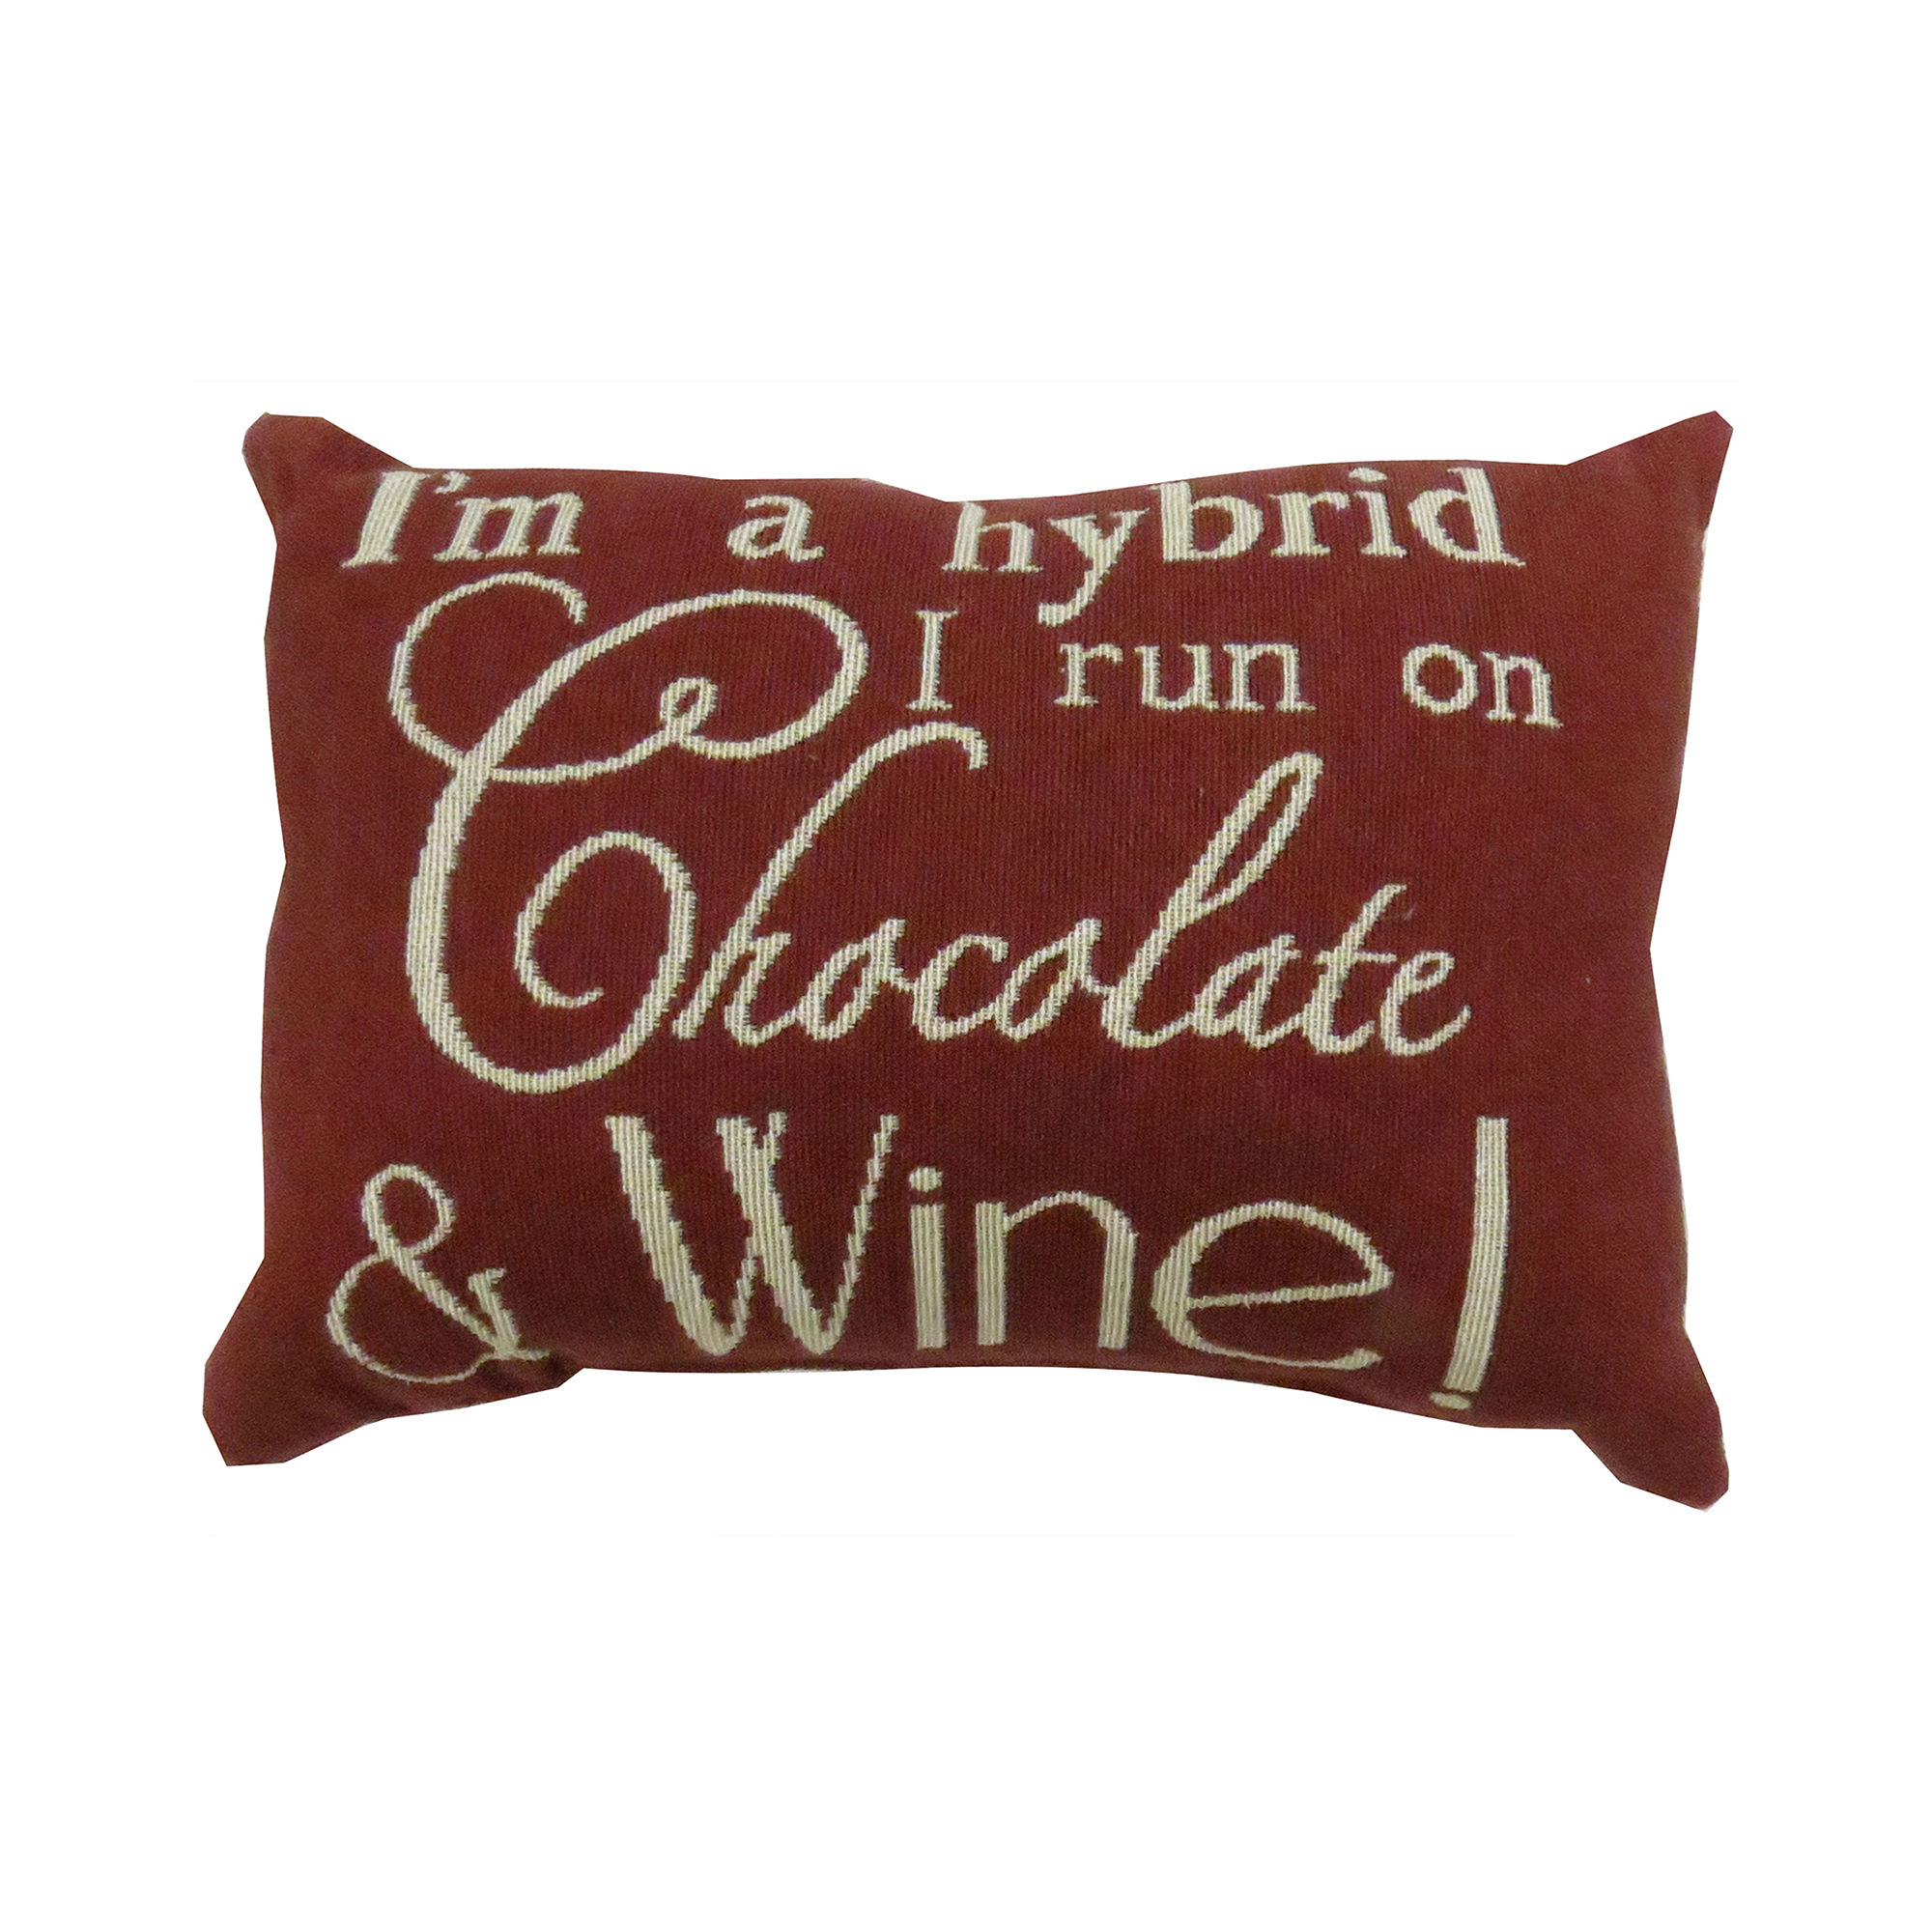 Park B. Smith I Run On Chocolate and Wine Decorative Pillow